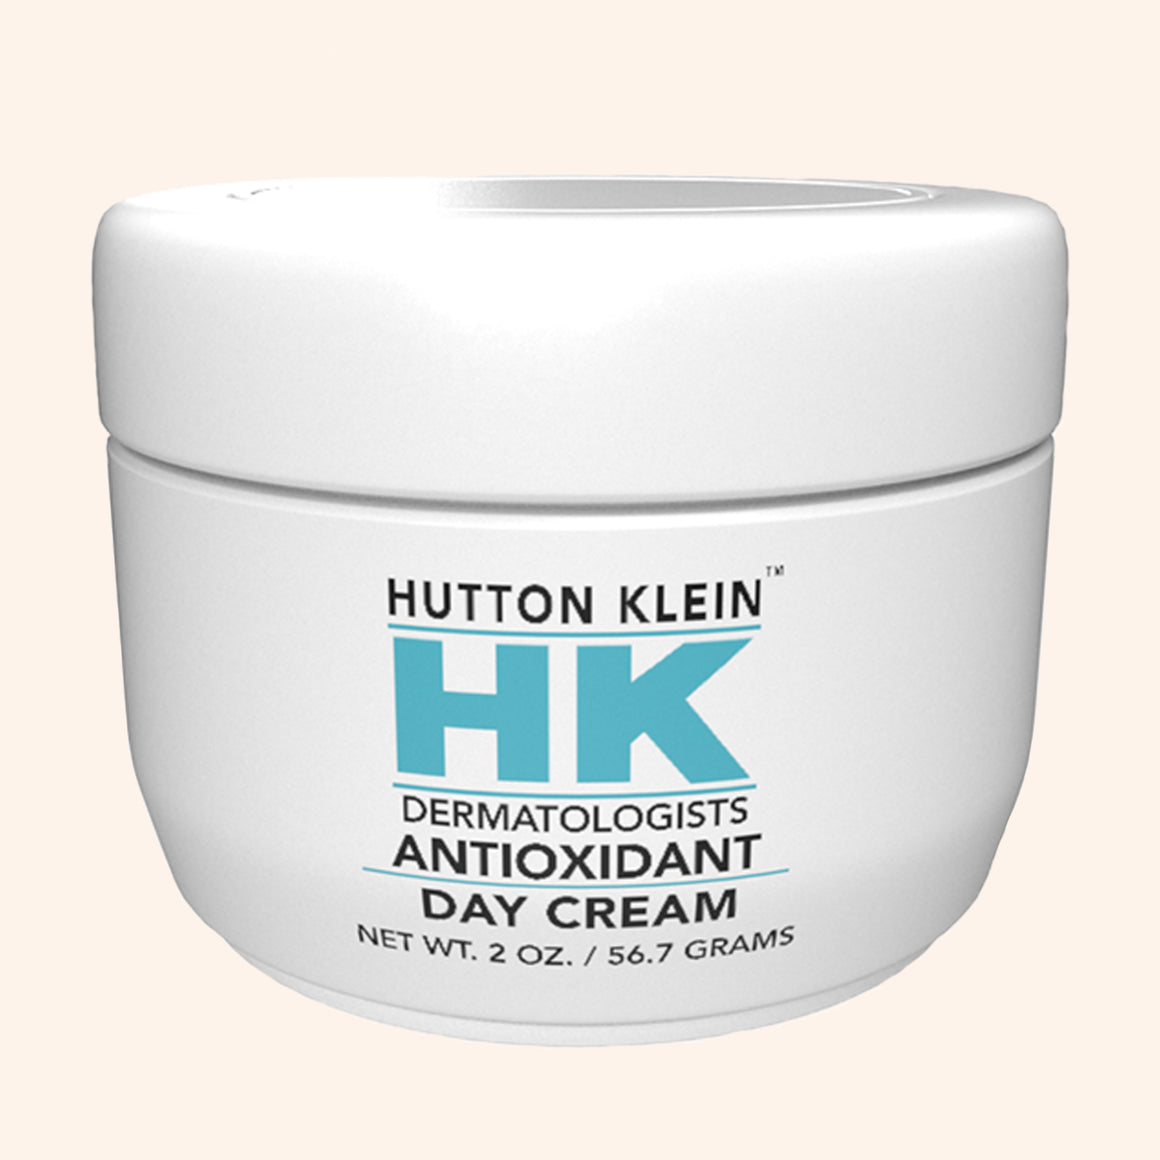 Hutton Klein Day Cream